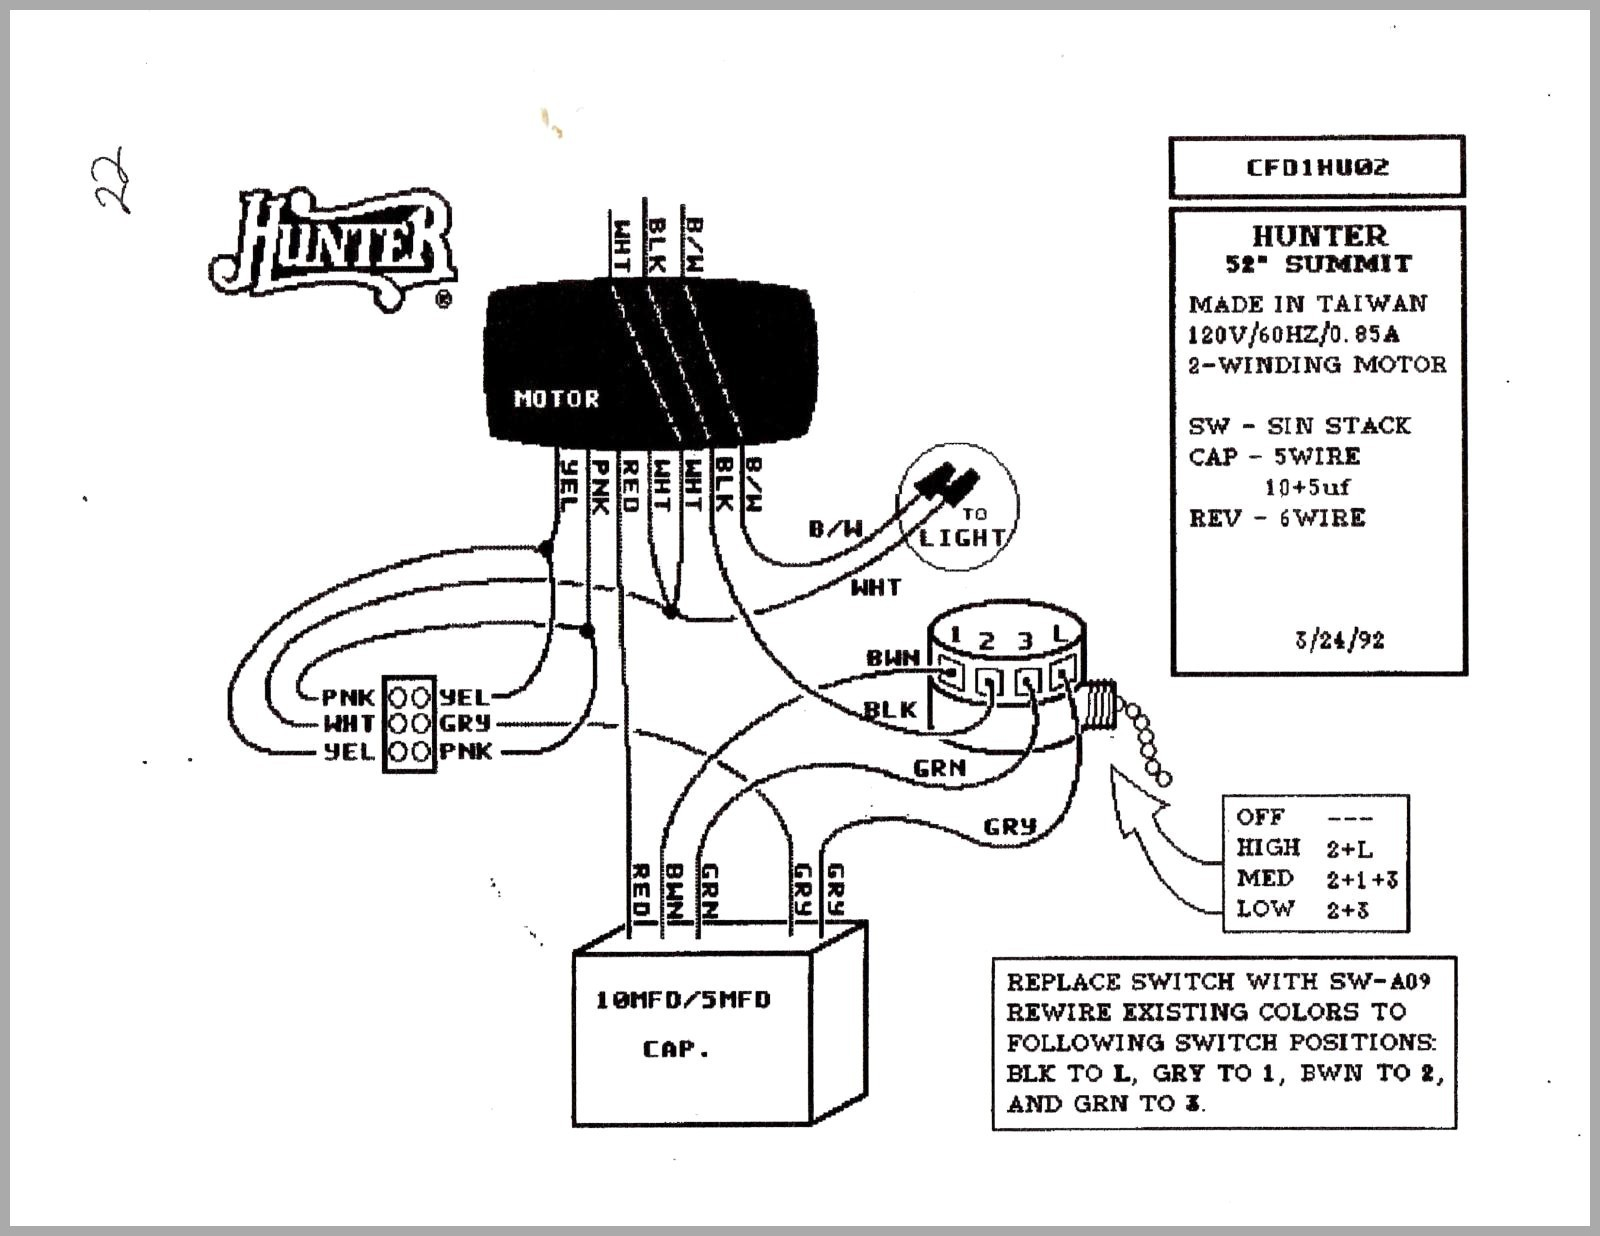 Roto Mix Wiring Diagram For Joystick Diagrams Western Wire Nice Fisher Snow Plow Minute Mount Gift Joysticks Connections